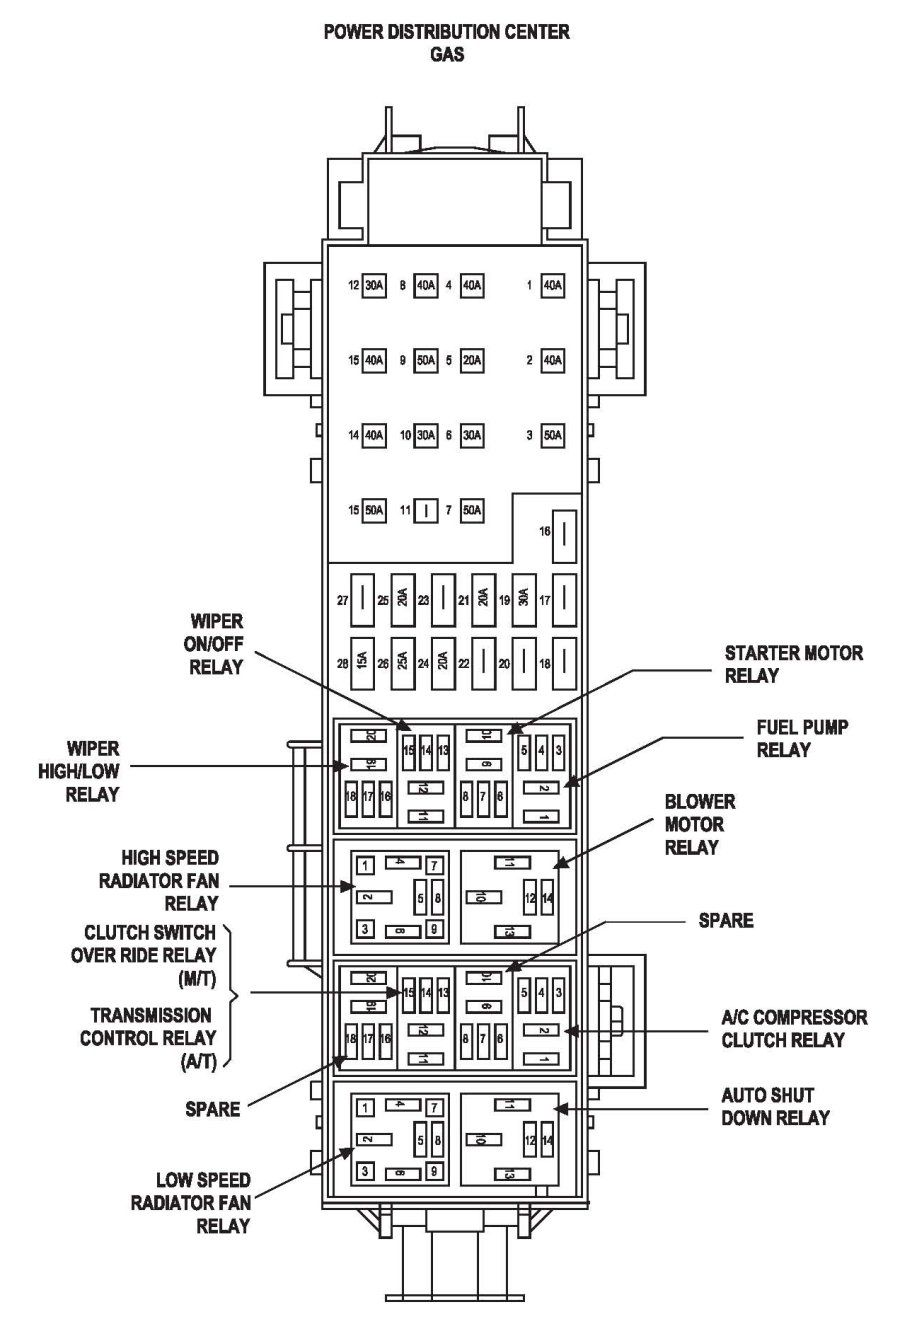 2002 Jeep Fuse Box Another Blog About Wiring Diagram Cupola Schematic Liberty Image Details Rh Pinterest Com Location